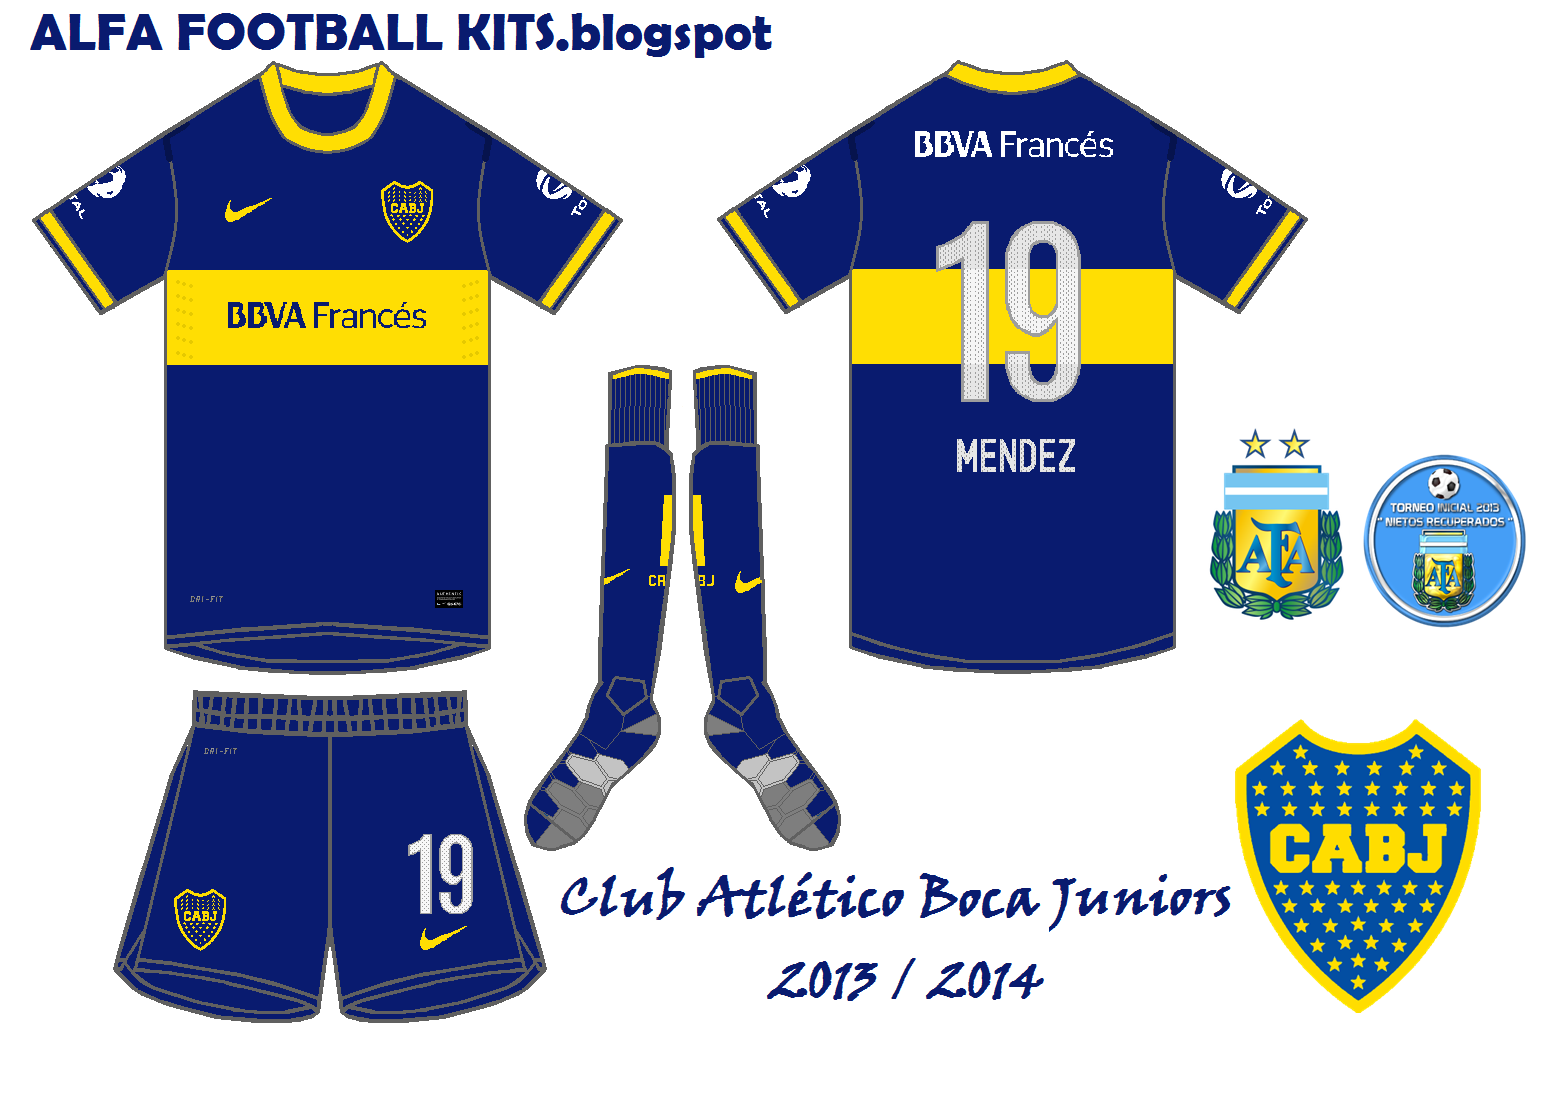 ALFA Football KITS: CLUB ATLÉTICO BOCA JUNIORS - TITULAR 2013 / 2014